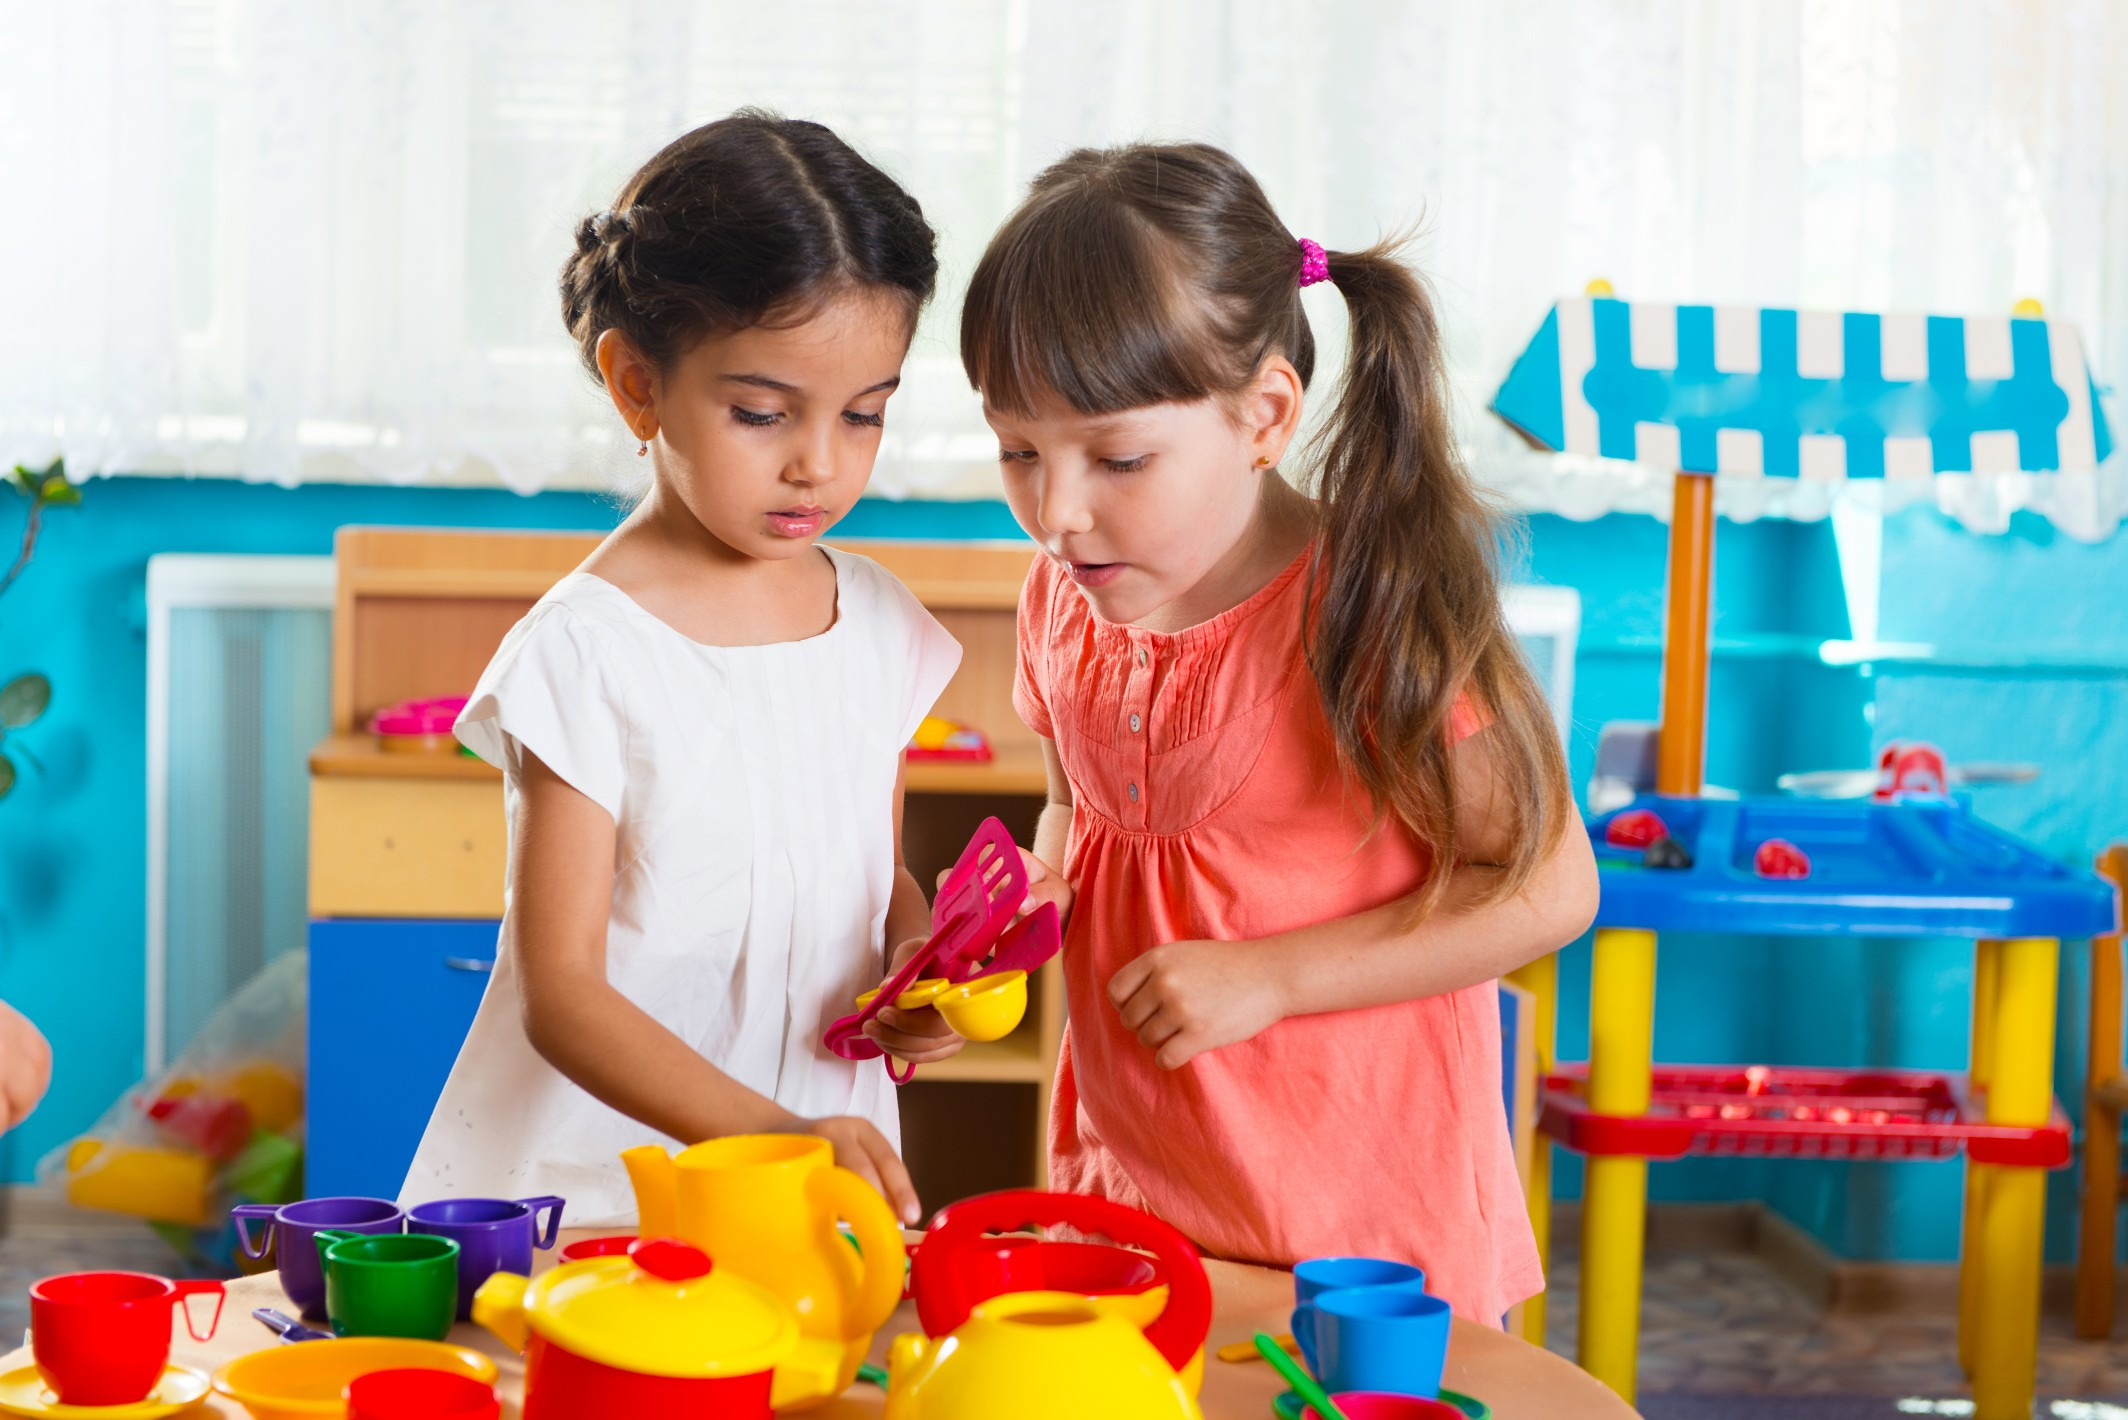 Children will learn from their peers and have more advanced conversations with one another.